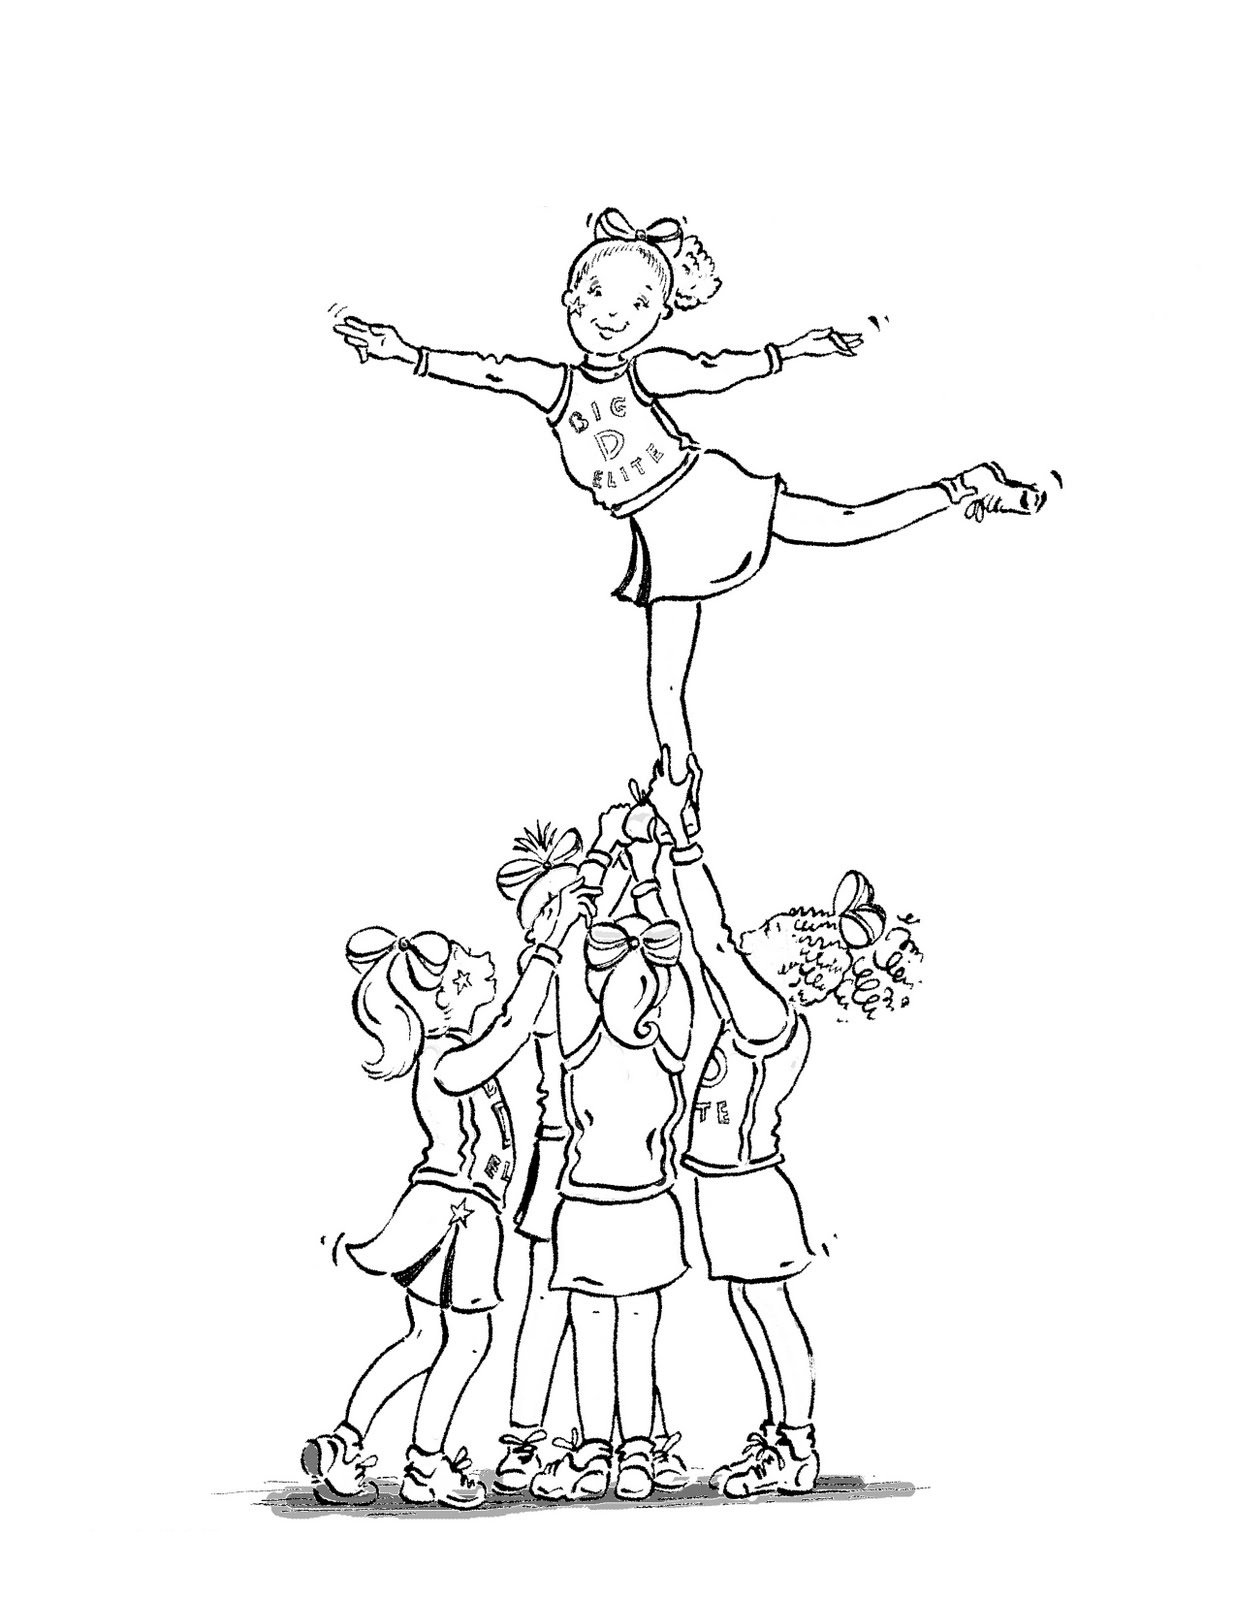 cheerleading coloring pages for grils - photo#7